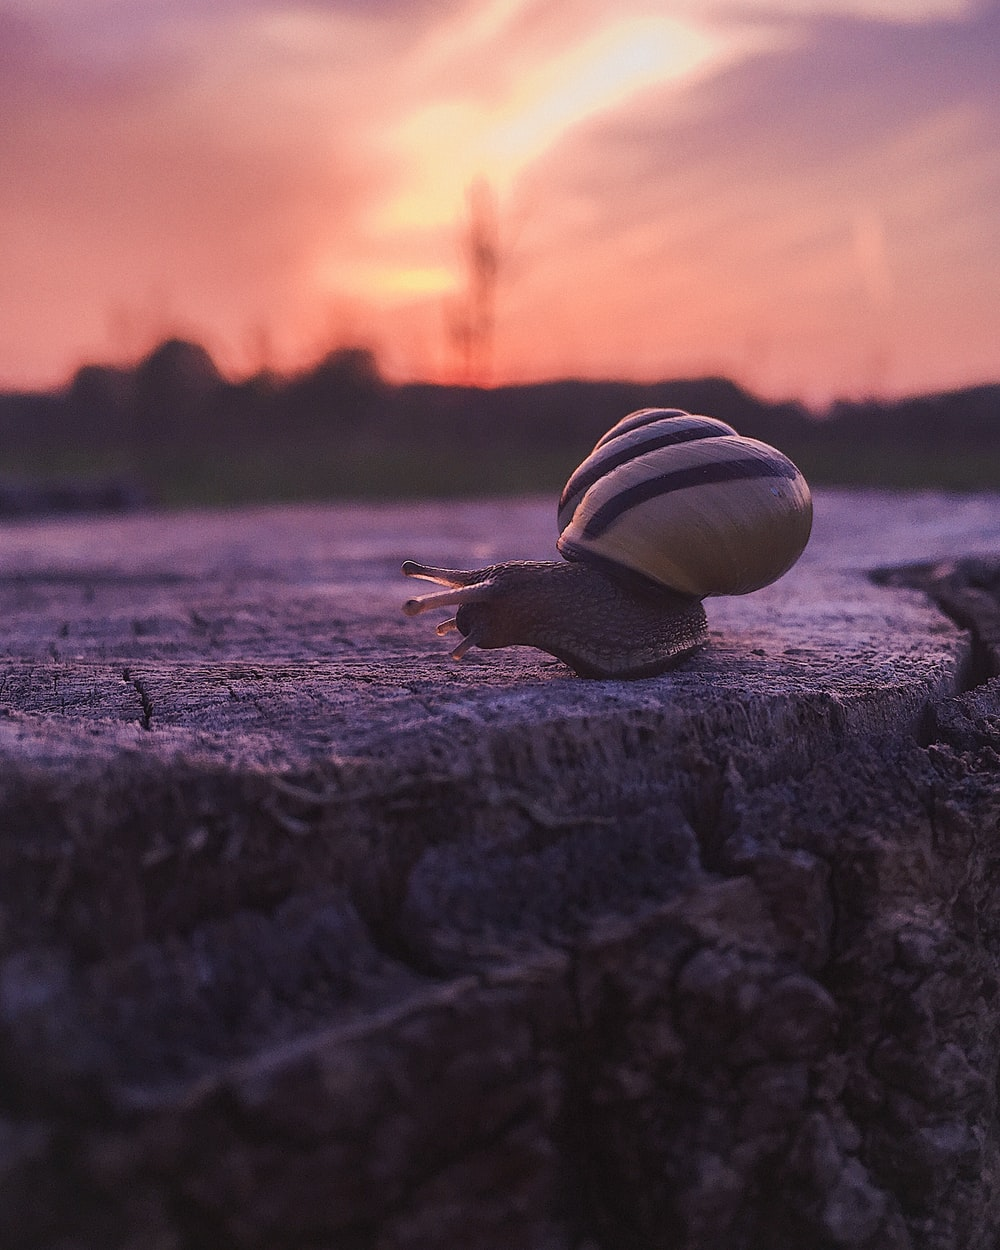 white and brown snail on brown wooden surface during sunset